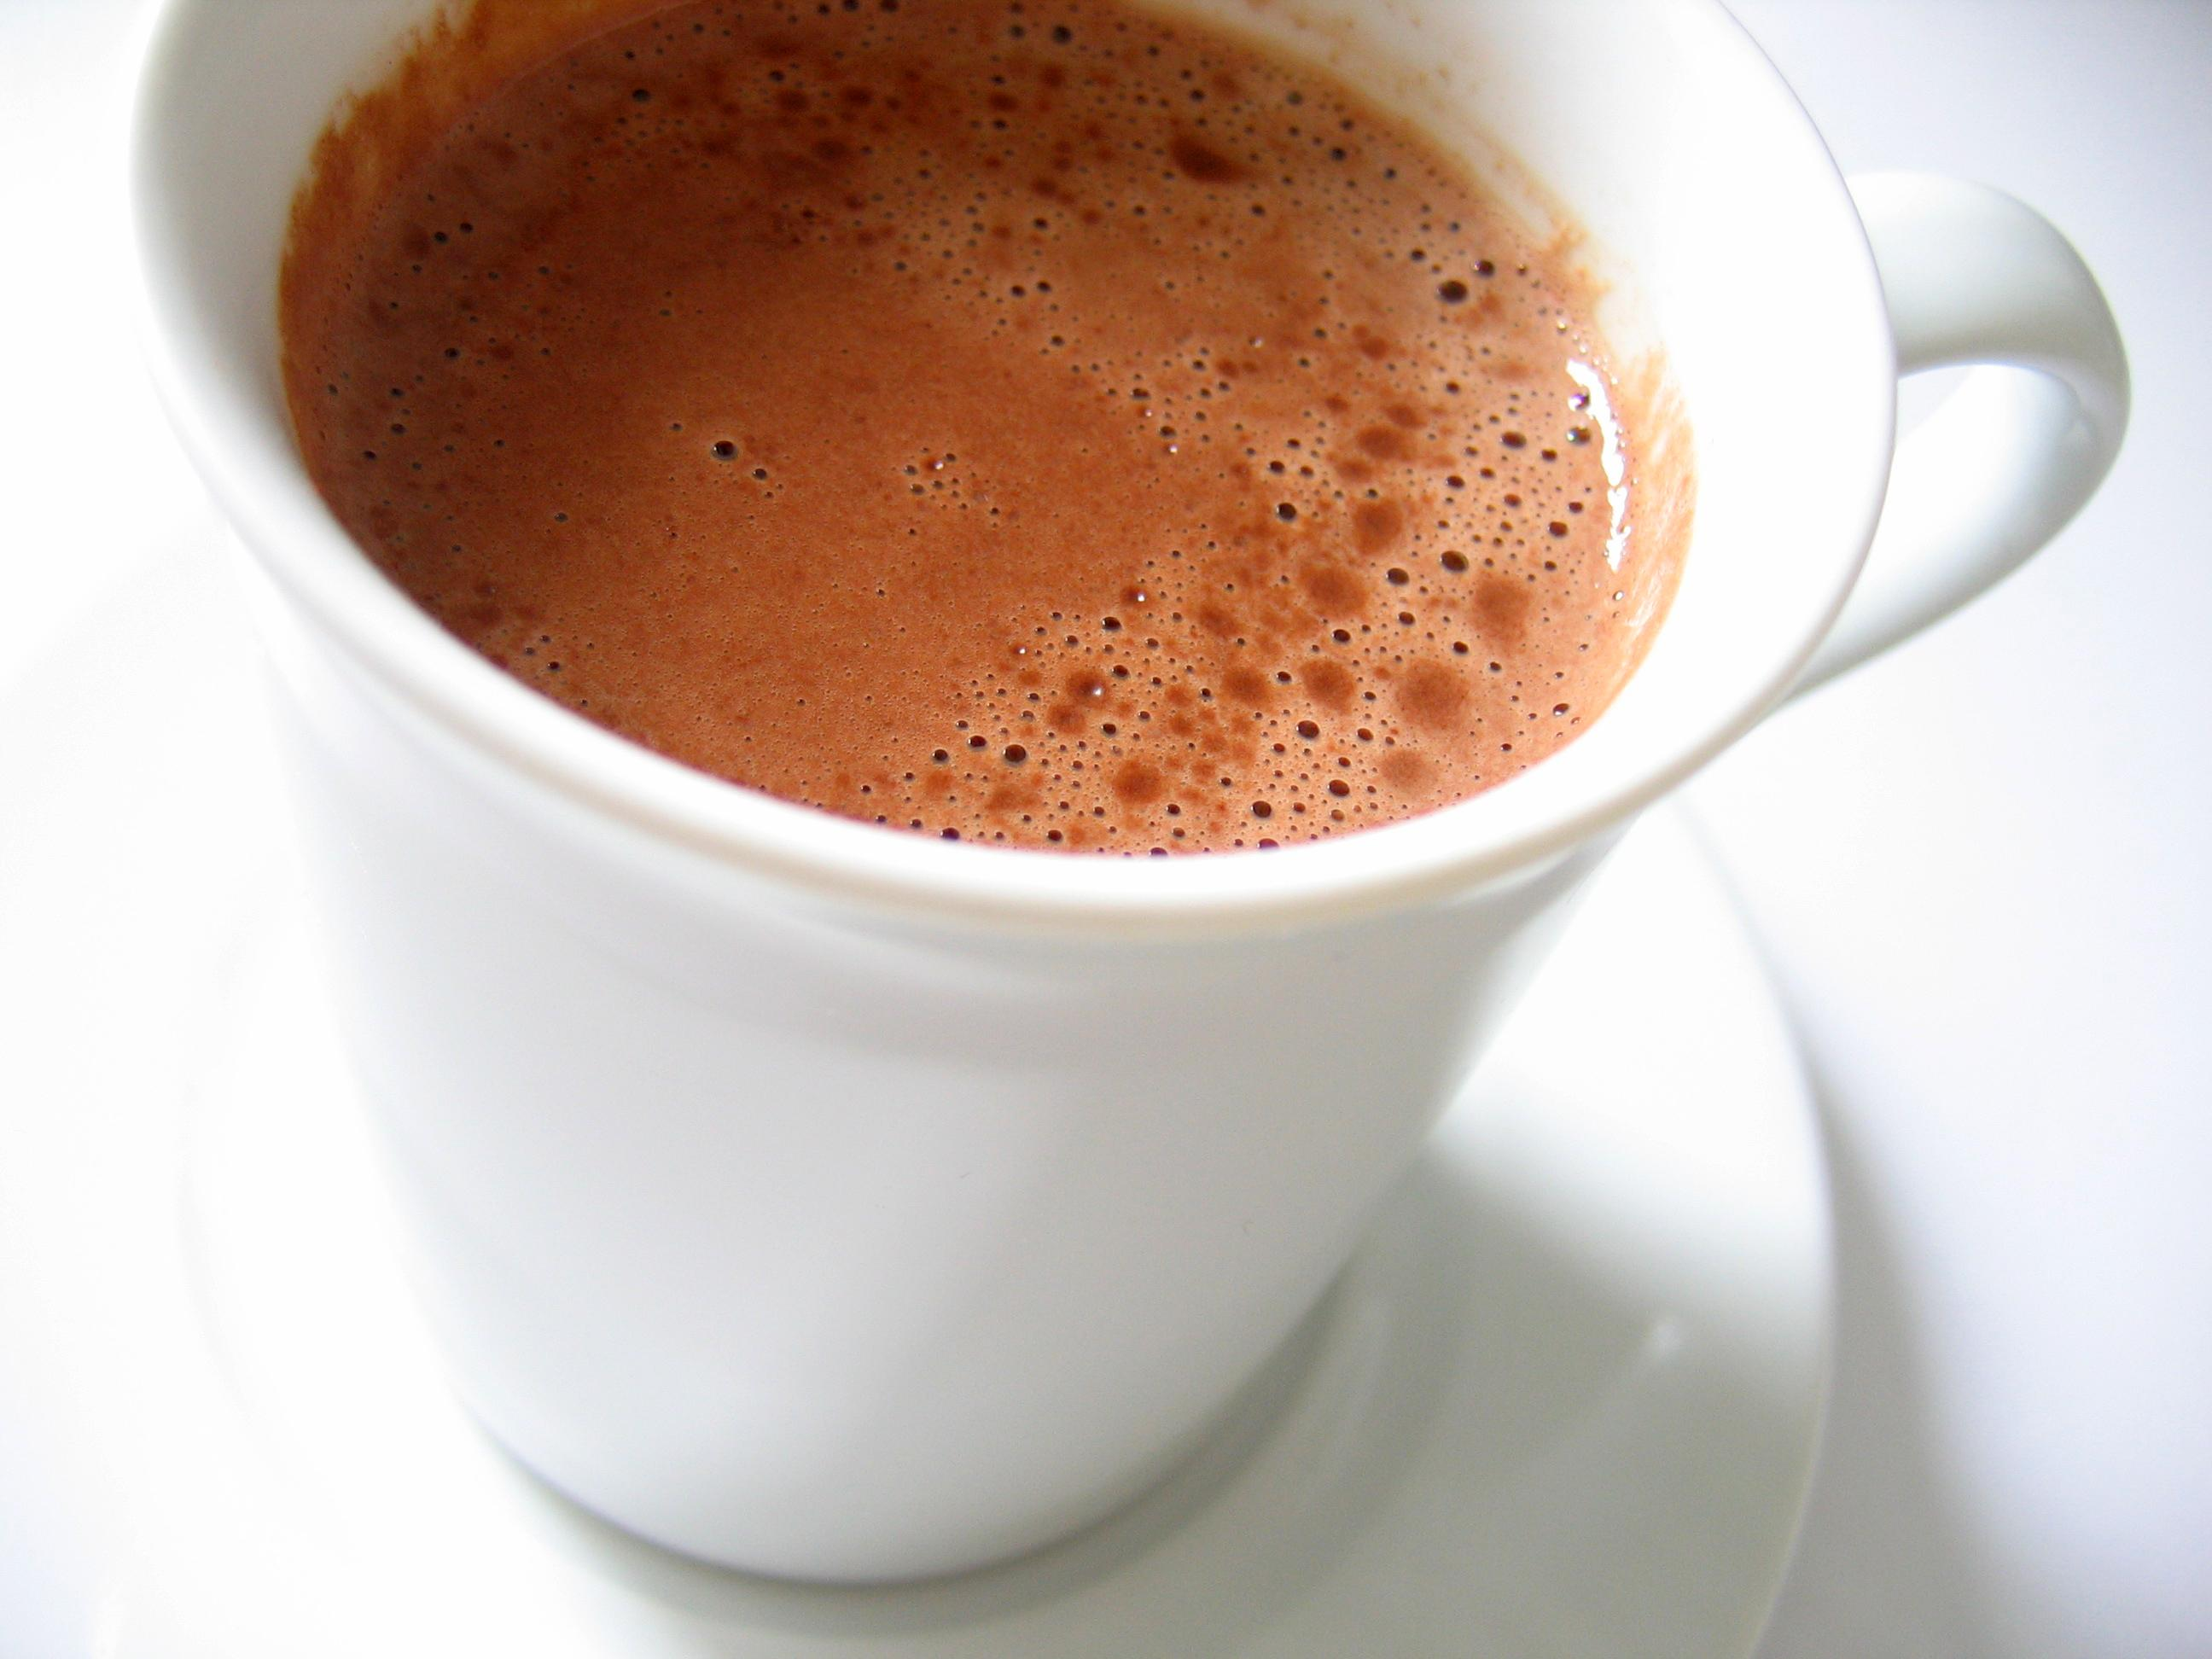 Hot cocoa cup